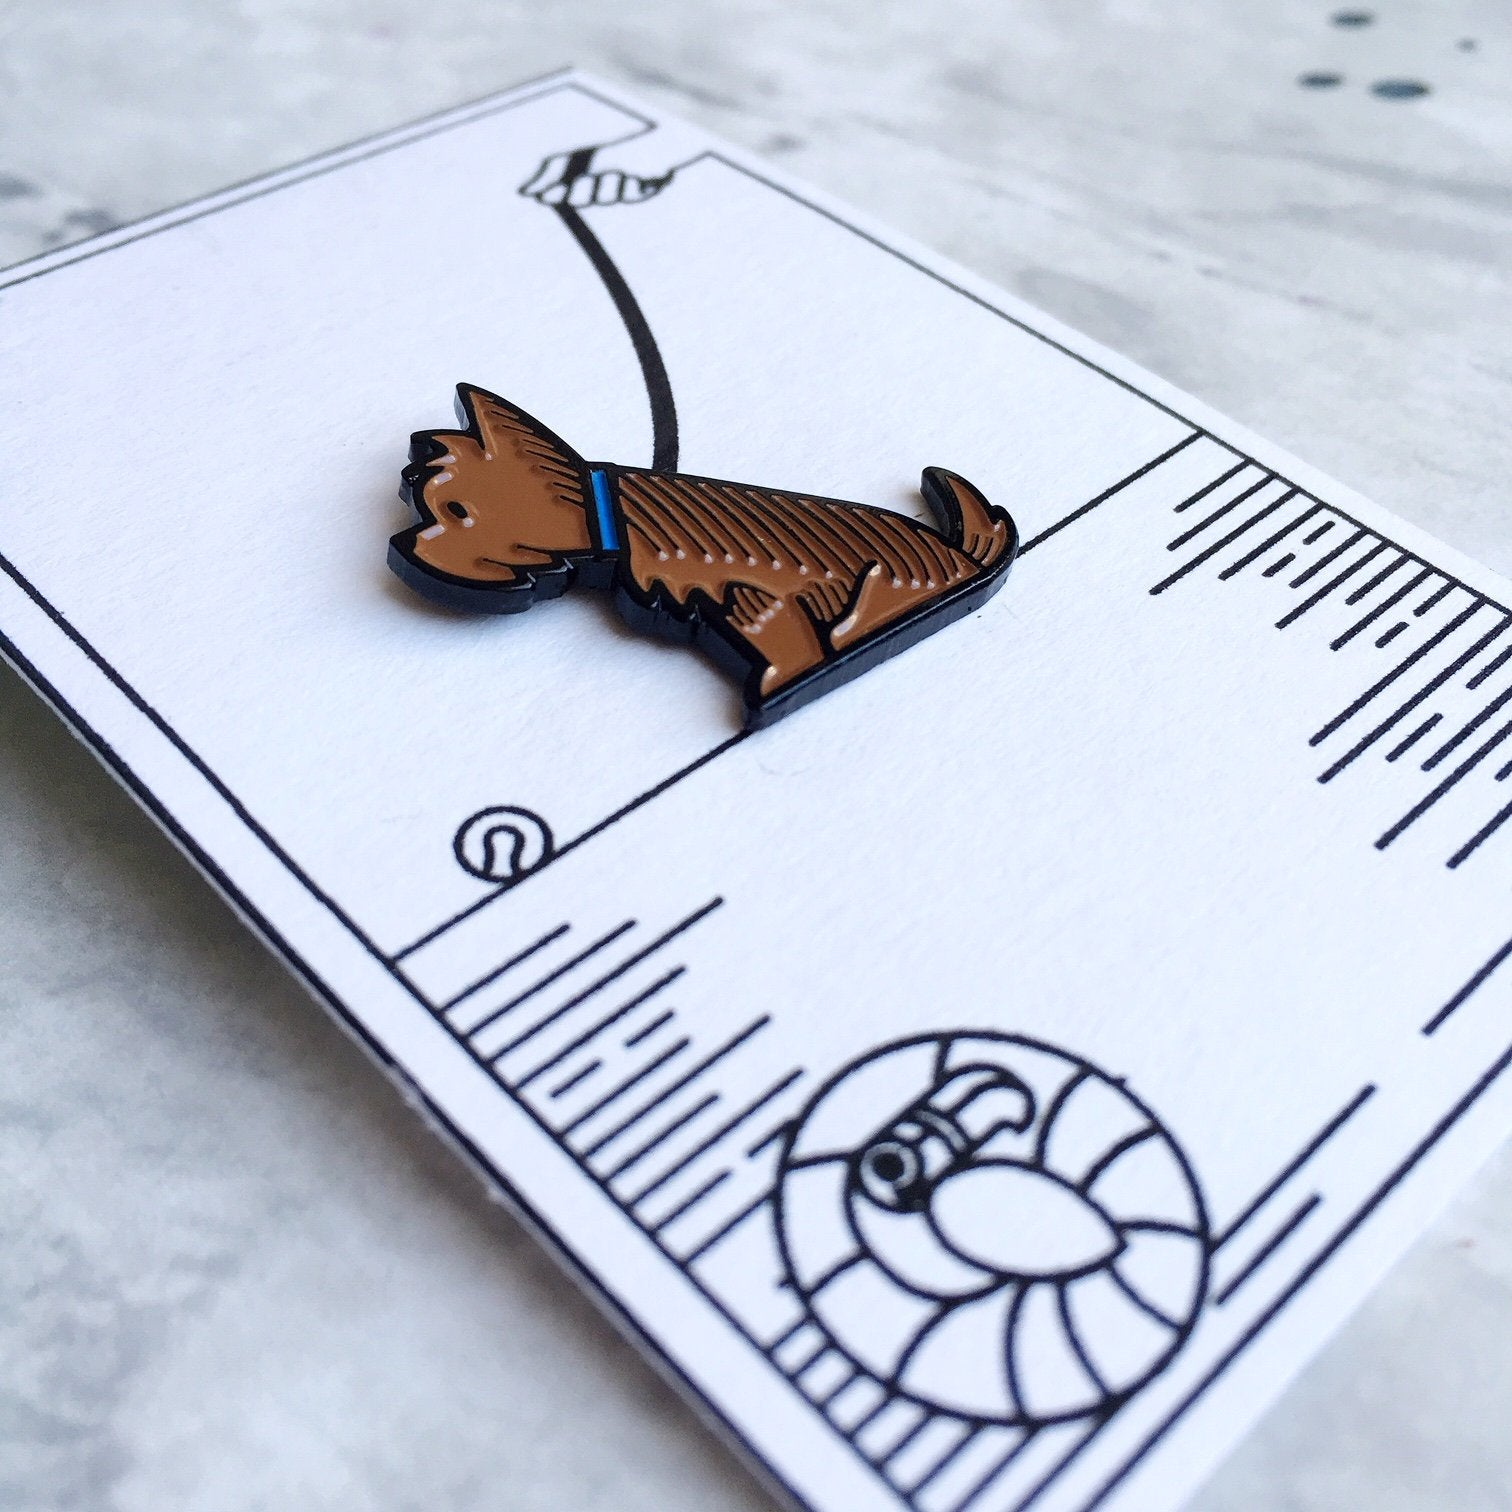 Yorkshire Terrier Pin Badge